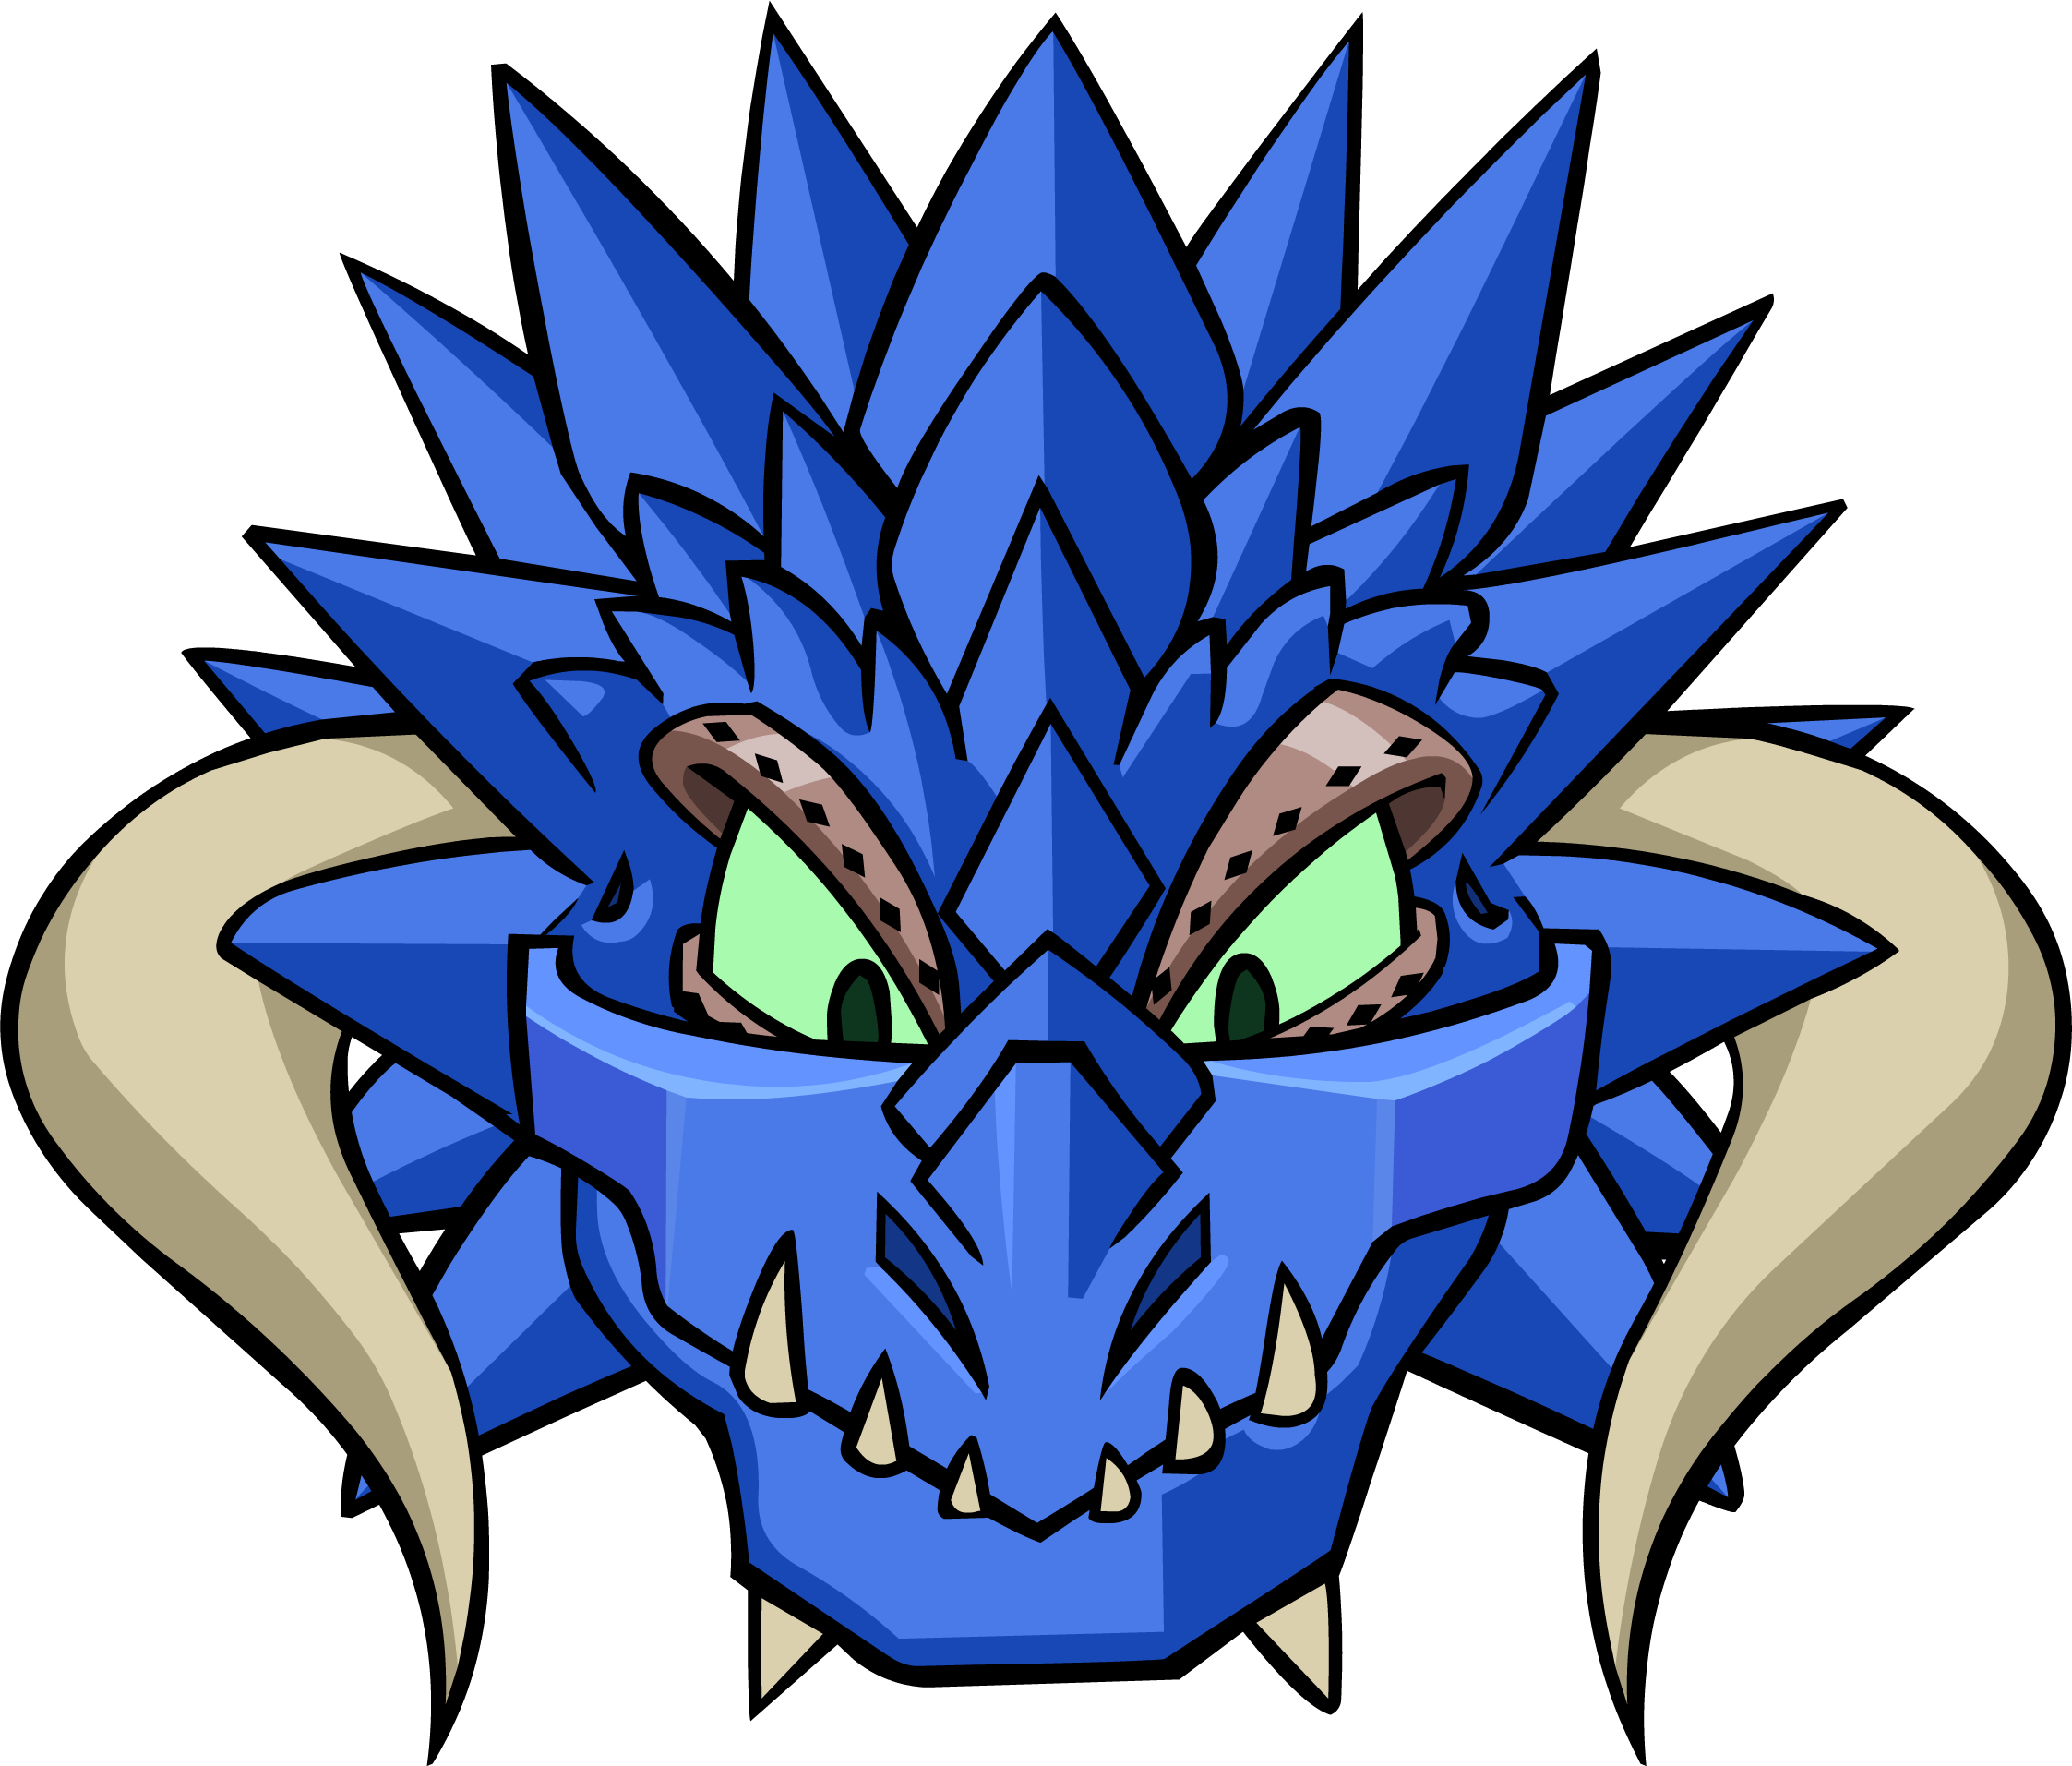 Blue Hydra Head